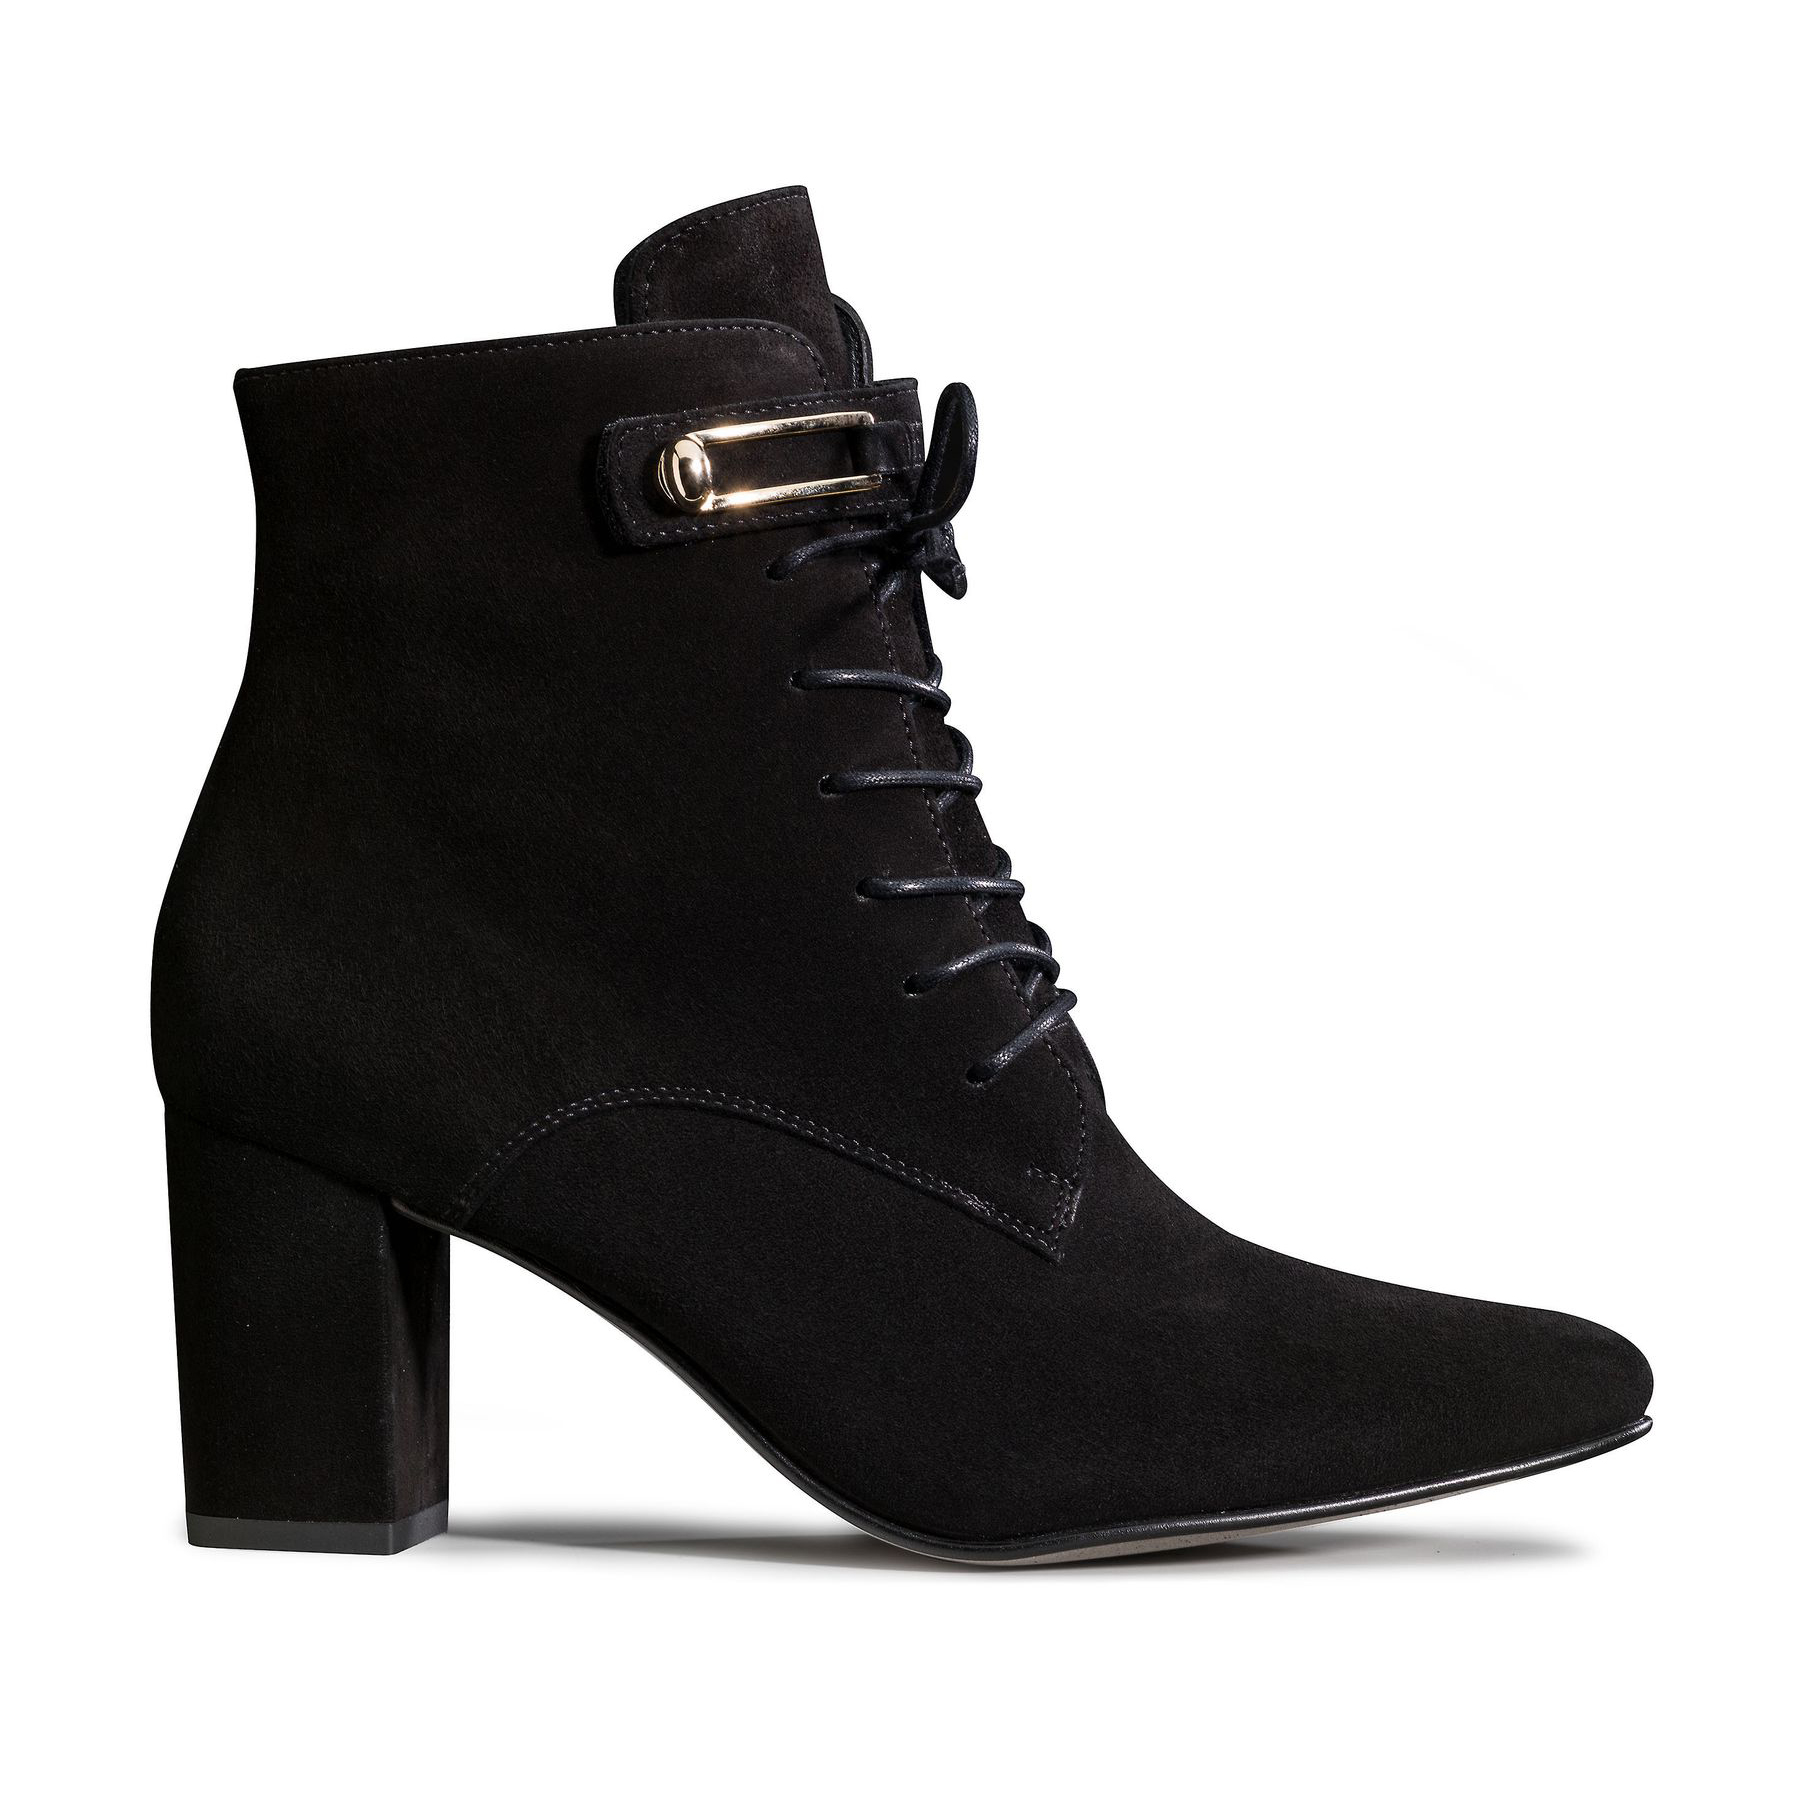 footwear arriving new product MASON - By Style-All Boots : Scarpa - The Ultimate ...